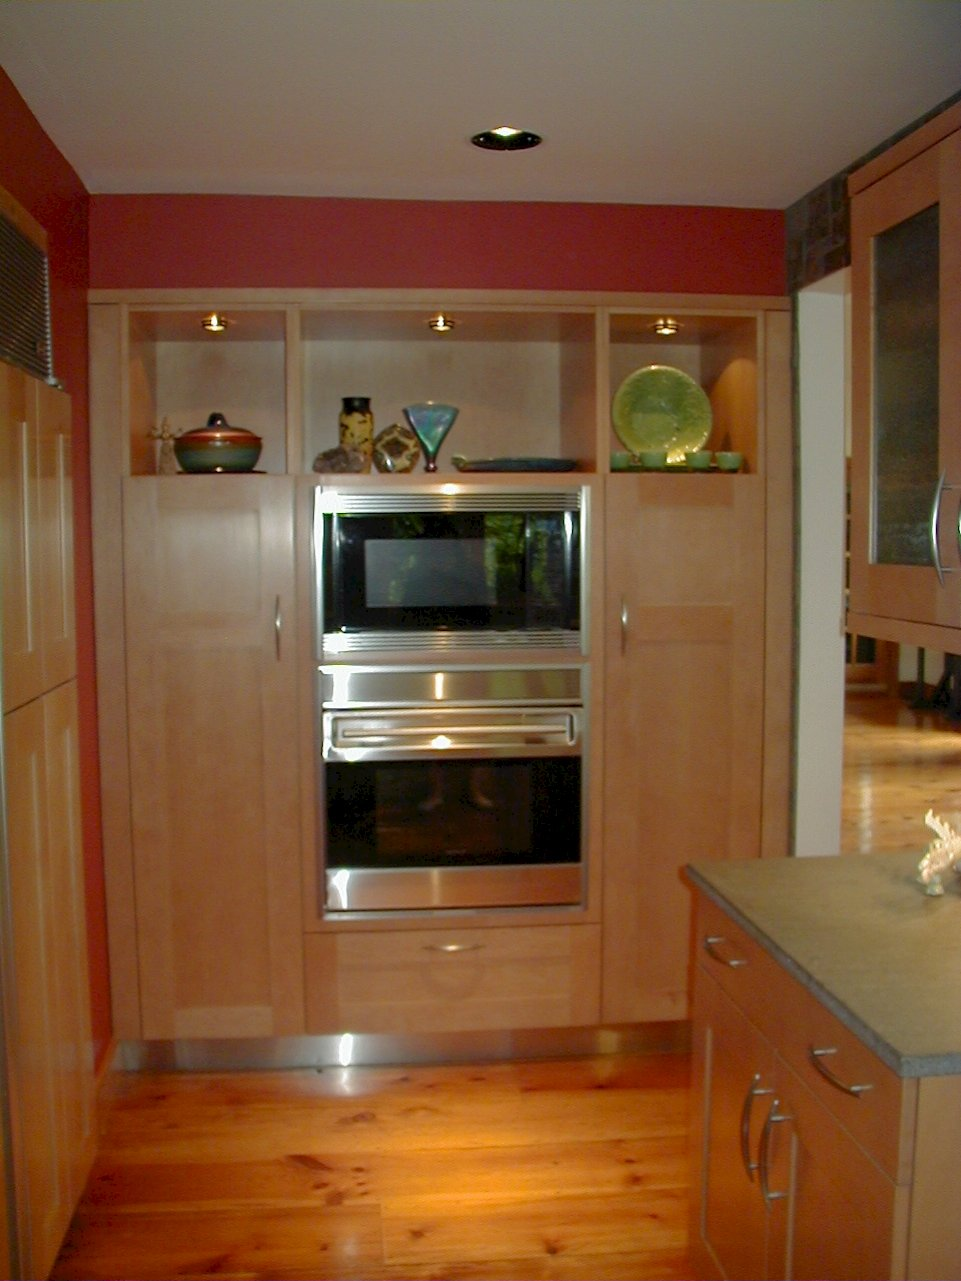 Wolf 30U/S Stainless oven and a Wolf MW24 microwave.